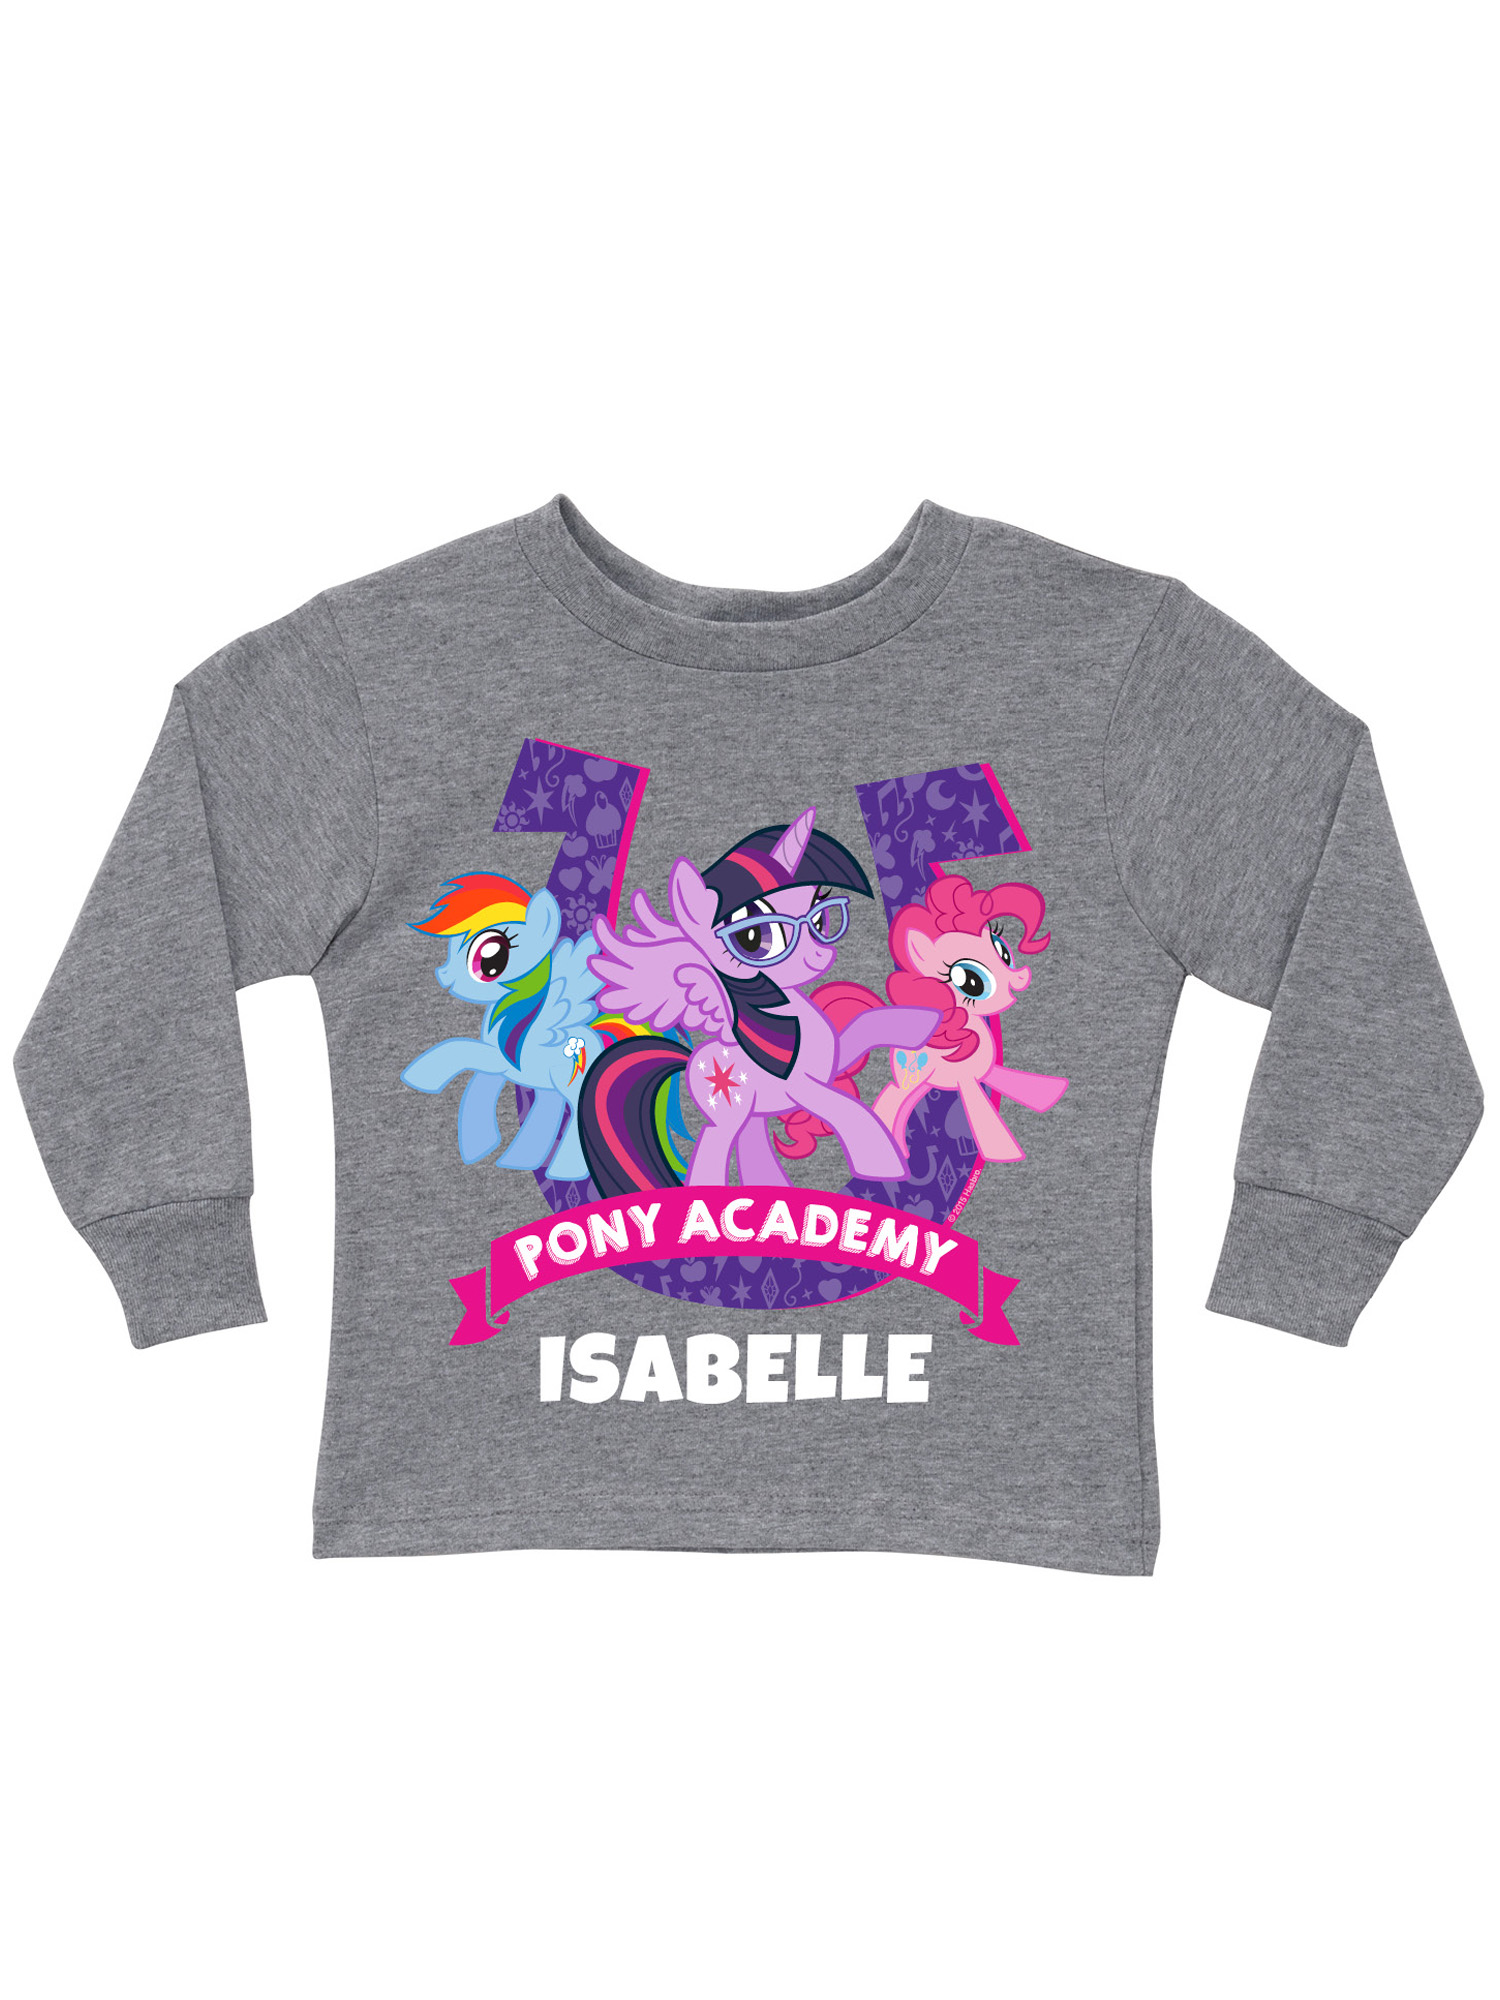 Personalized My Little Pony Academy Gray Toddler Girls' Long Sleeve T-Shirt